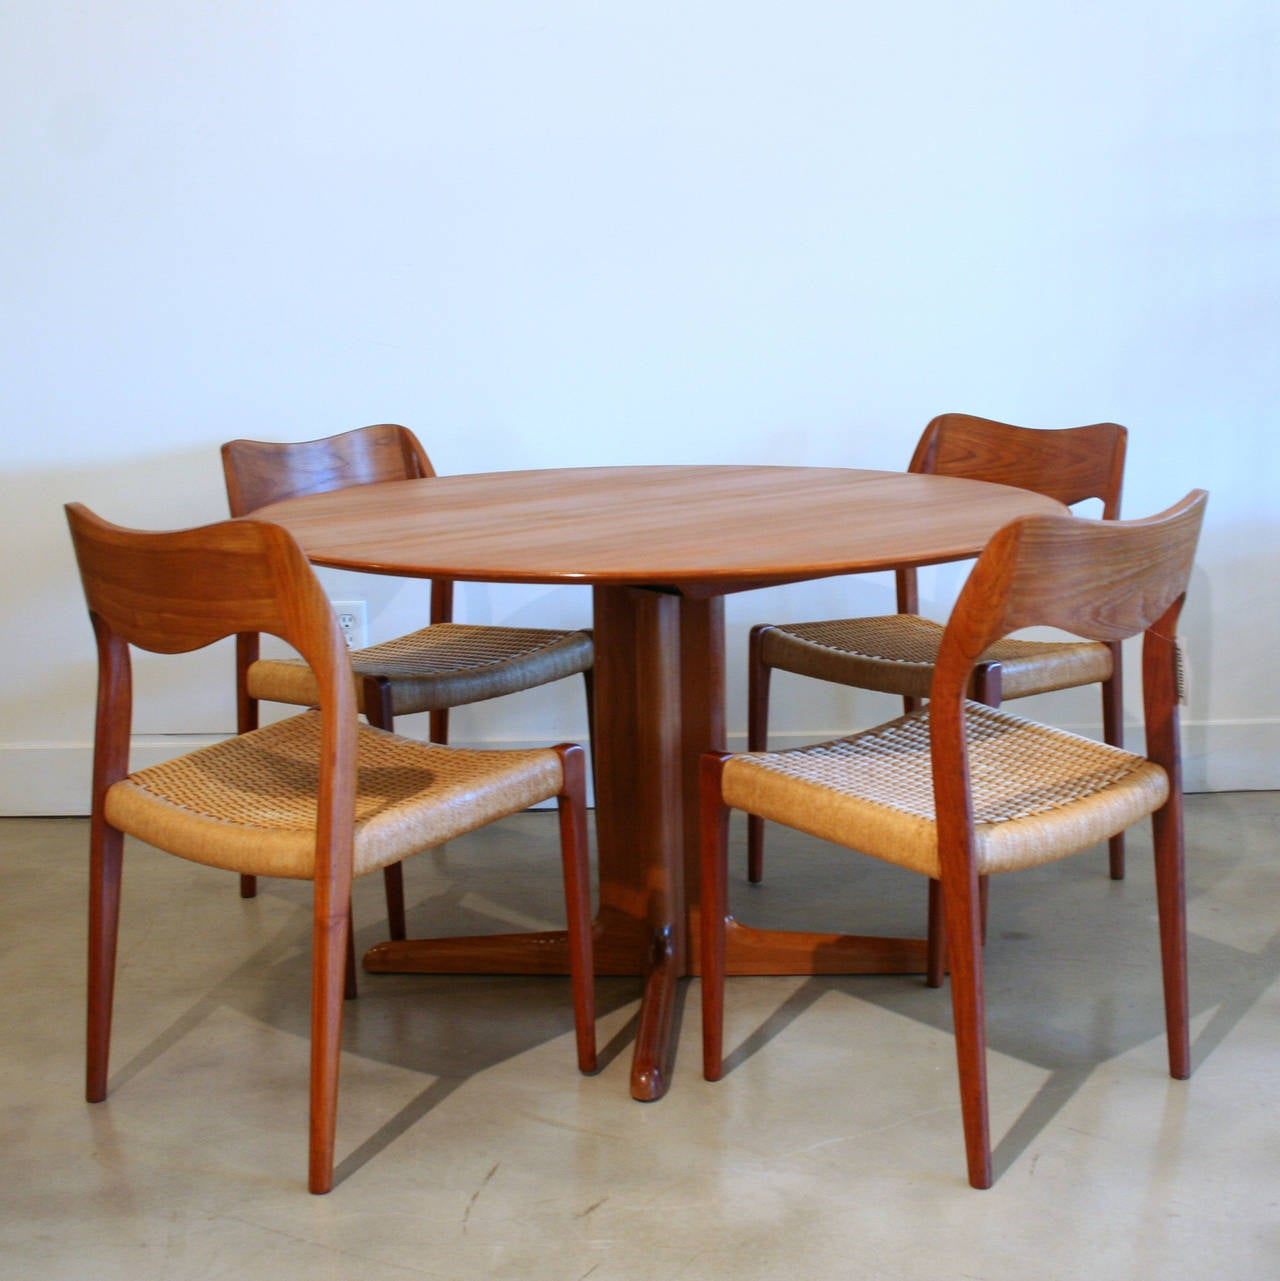 Teak extension dining table in excellent condition very clean and - Vintage Danish Round Teak Pedestal Base Table 2